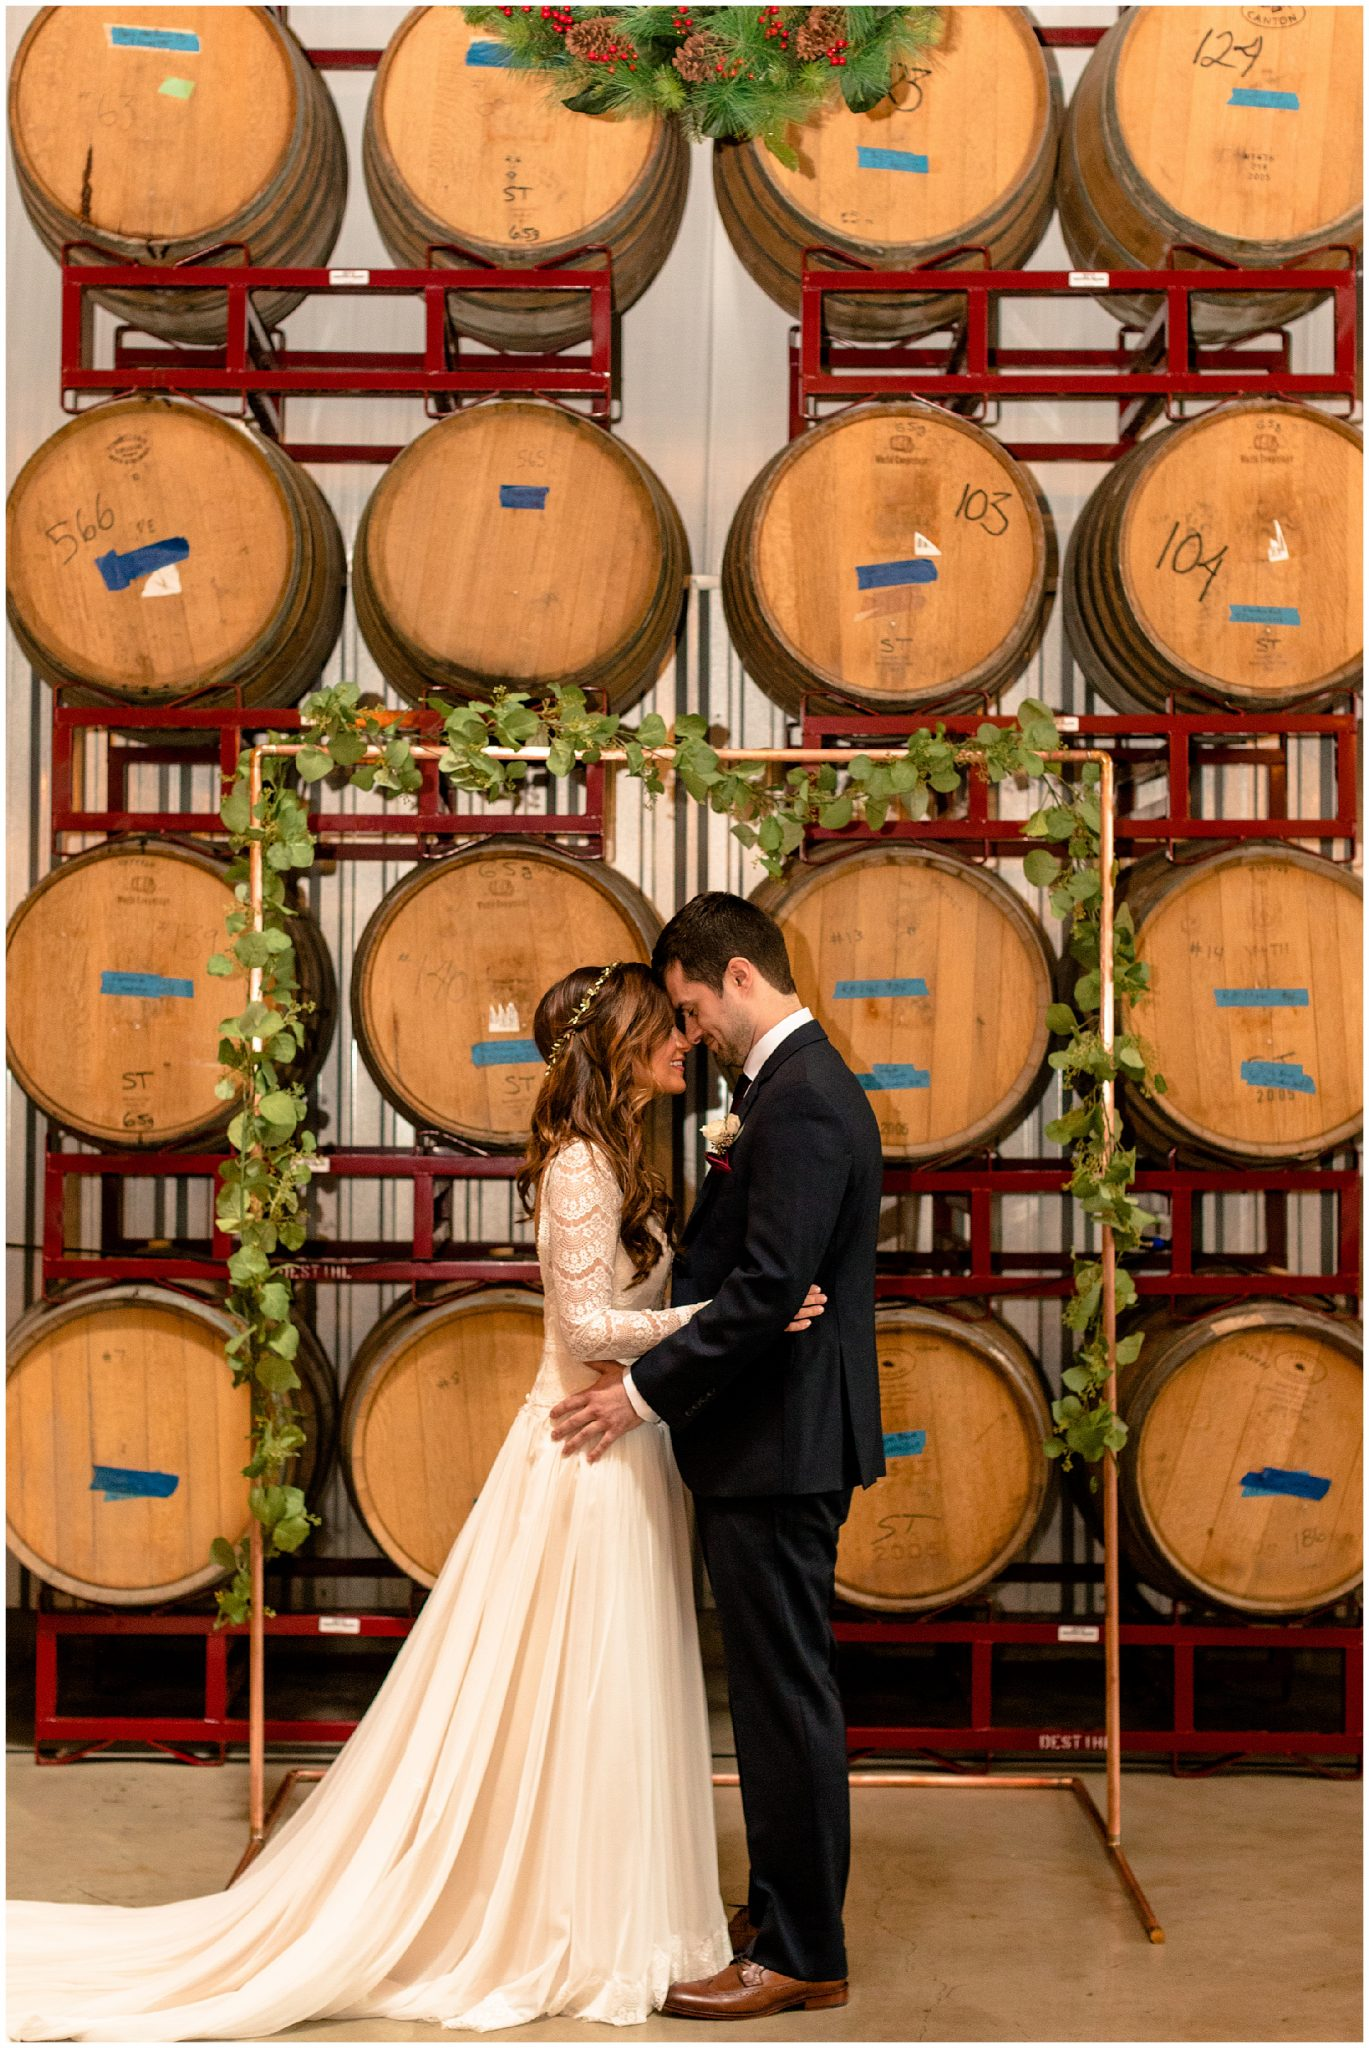 A Desthil Brewery Wedding, Winter Brewery Wedding_0022